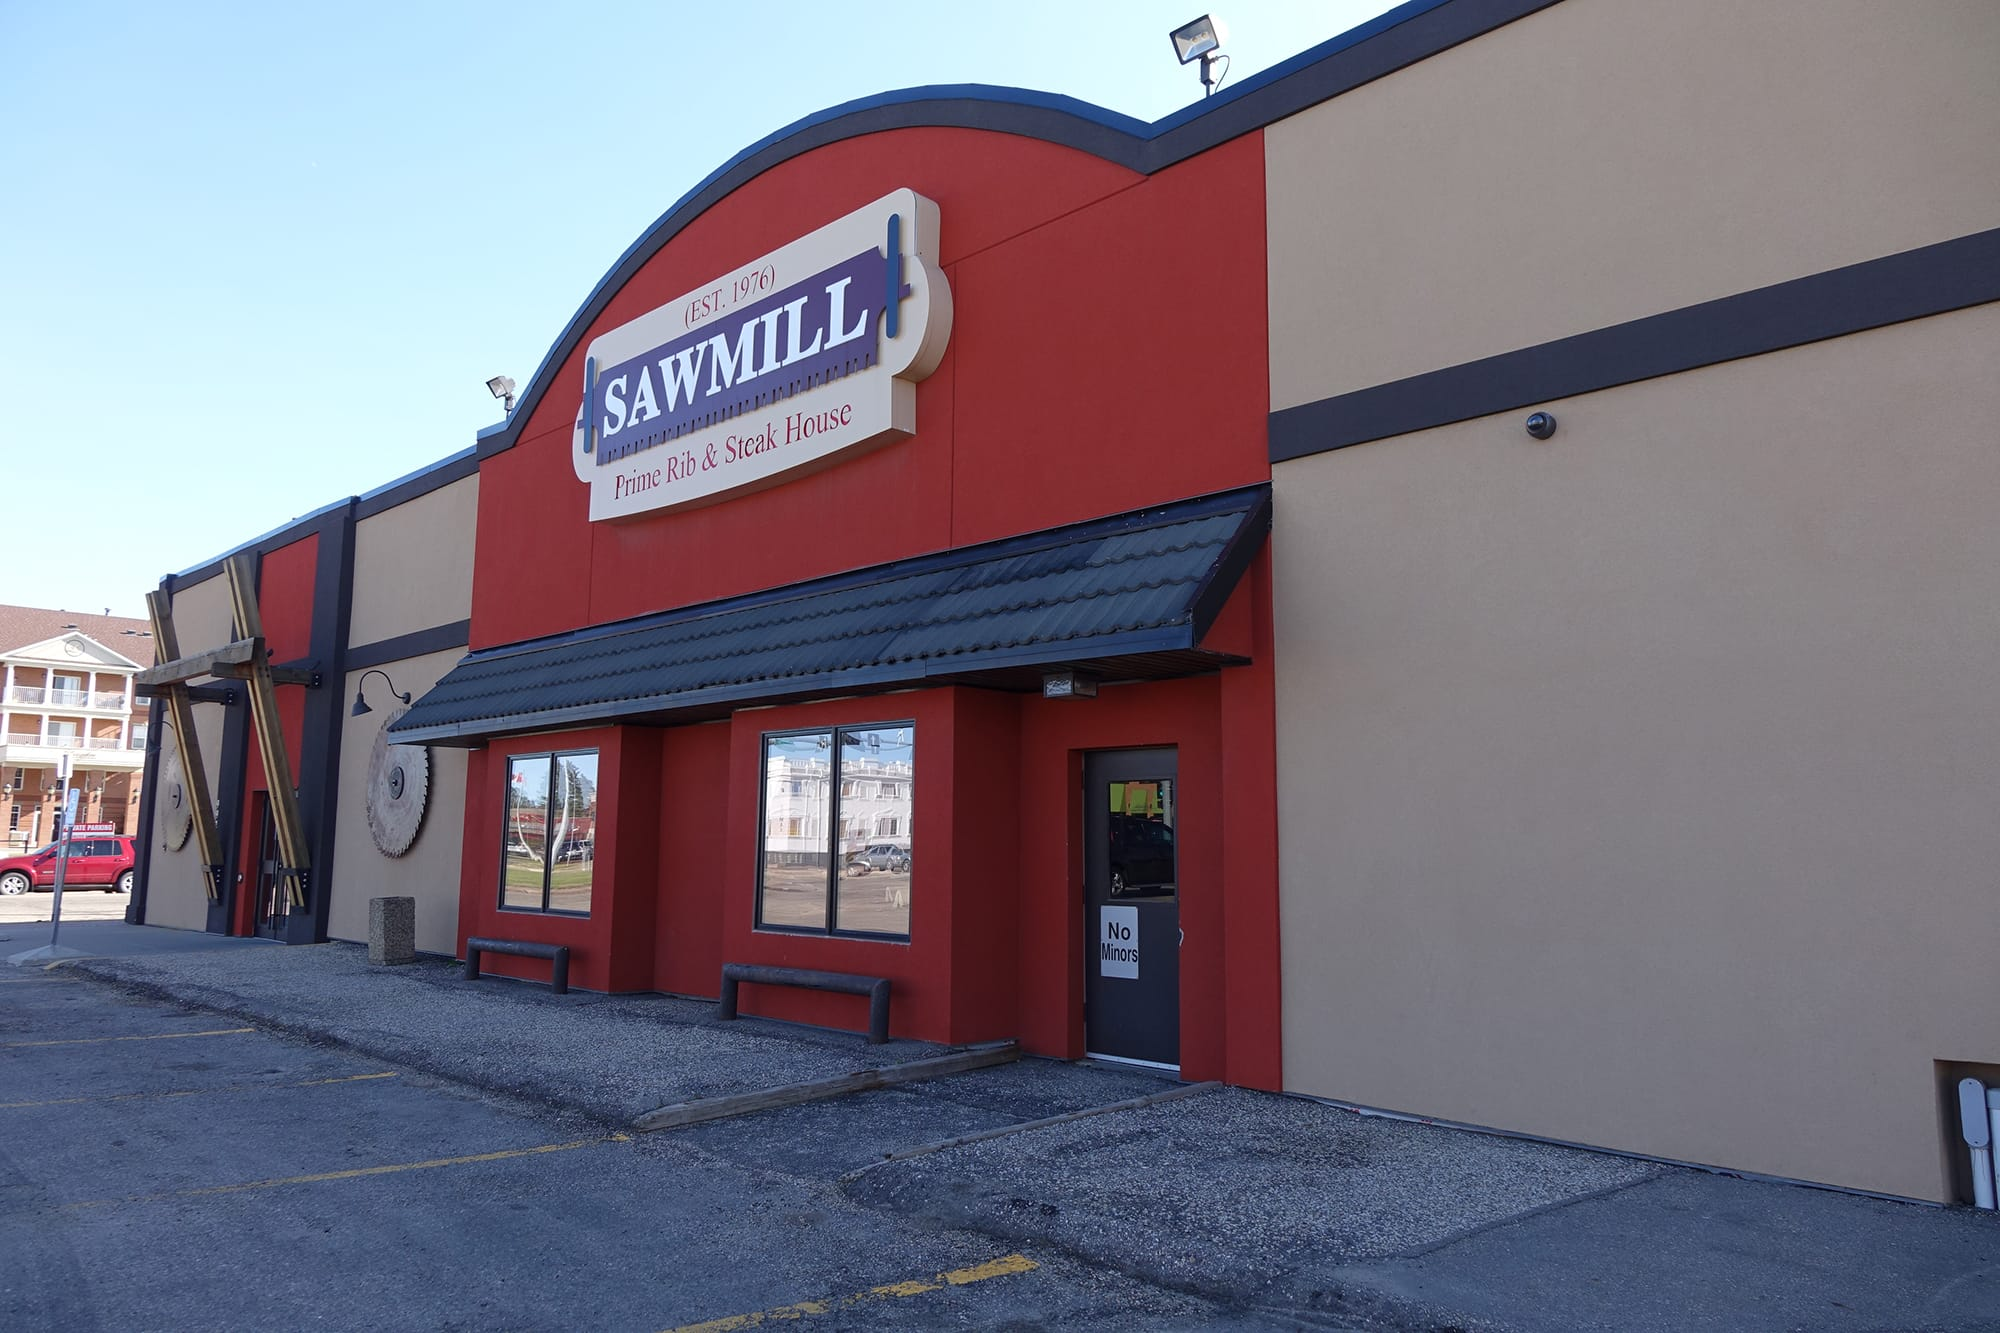 Sawmill Restaurant exterior front entrance